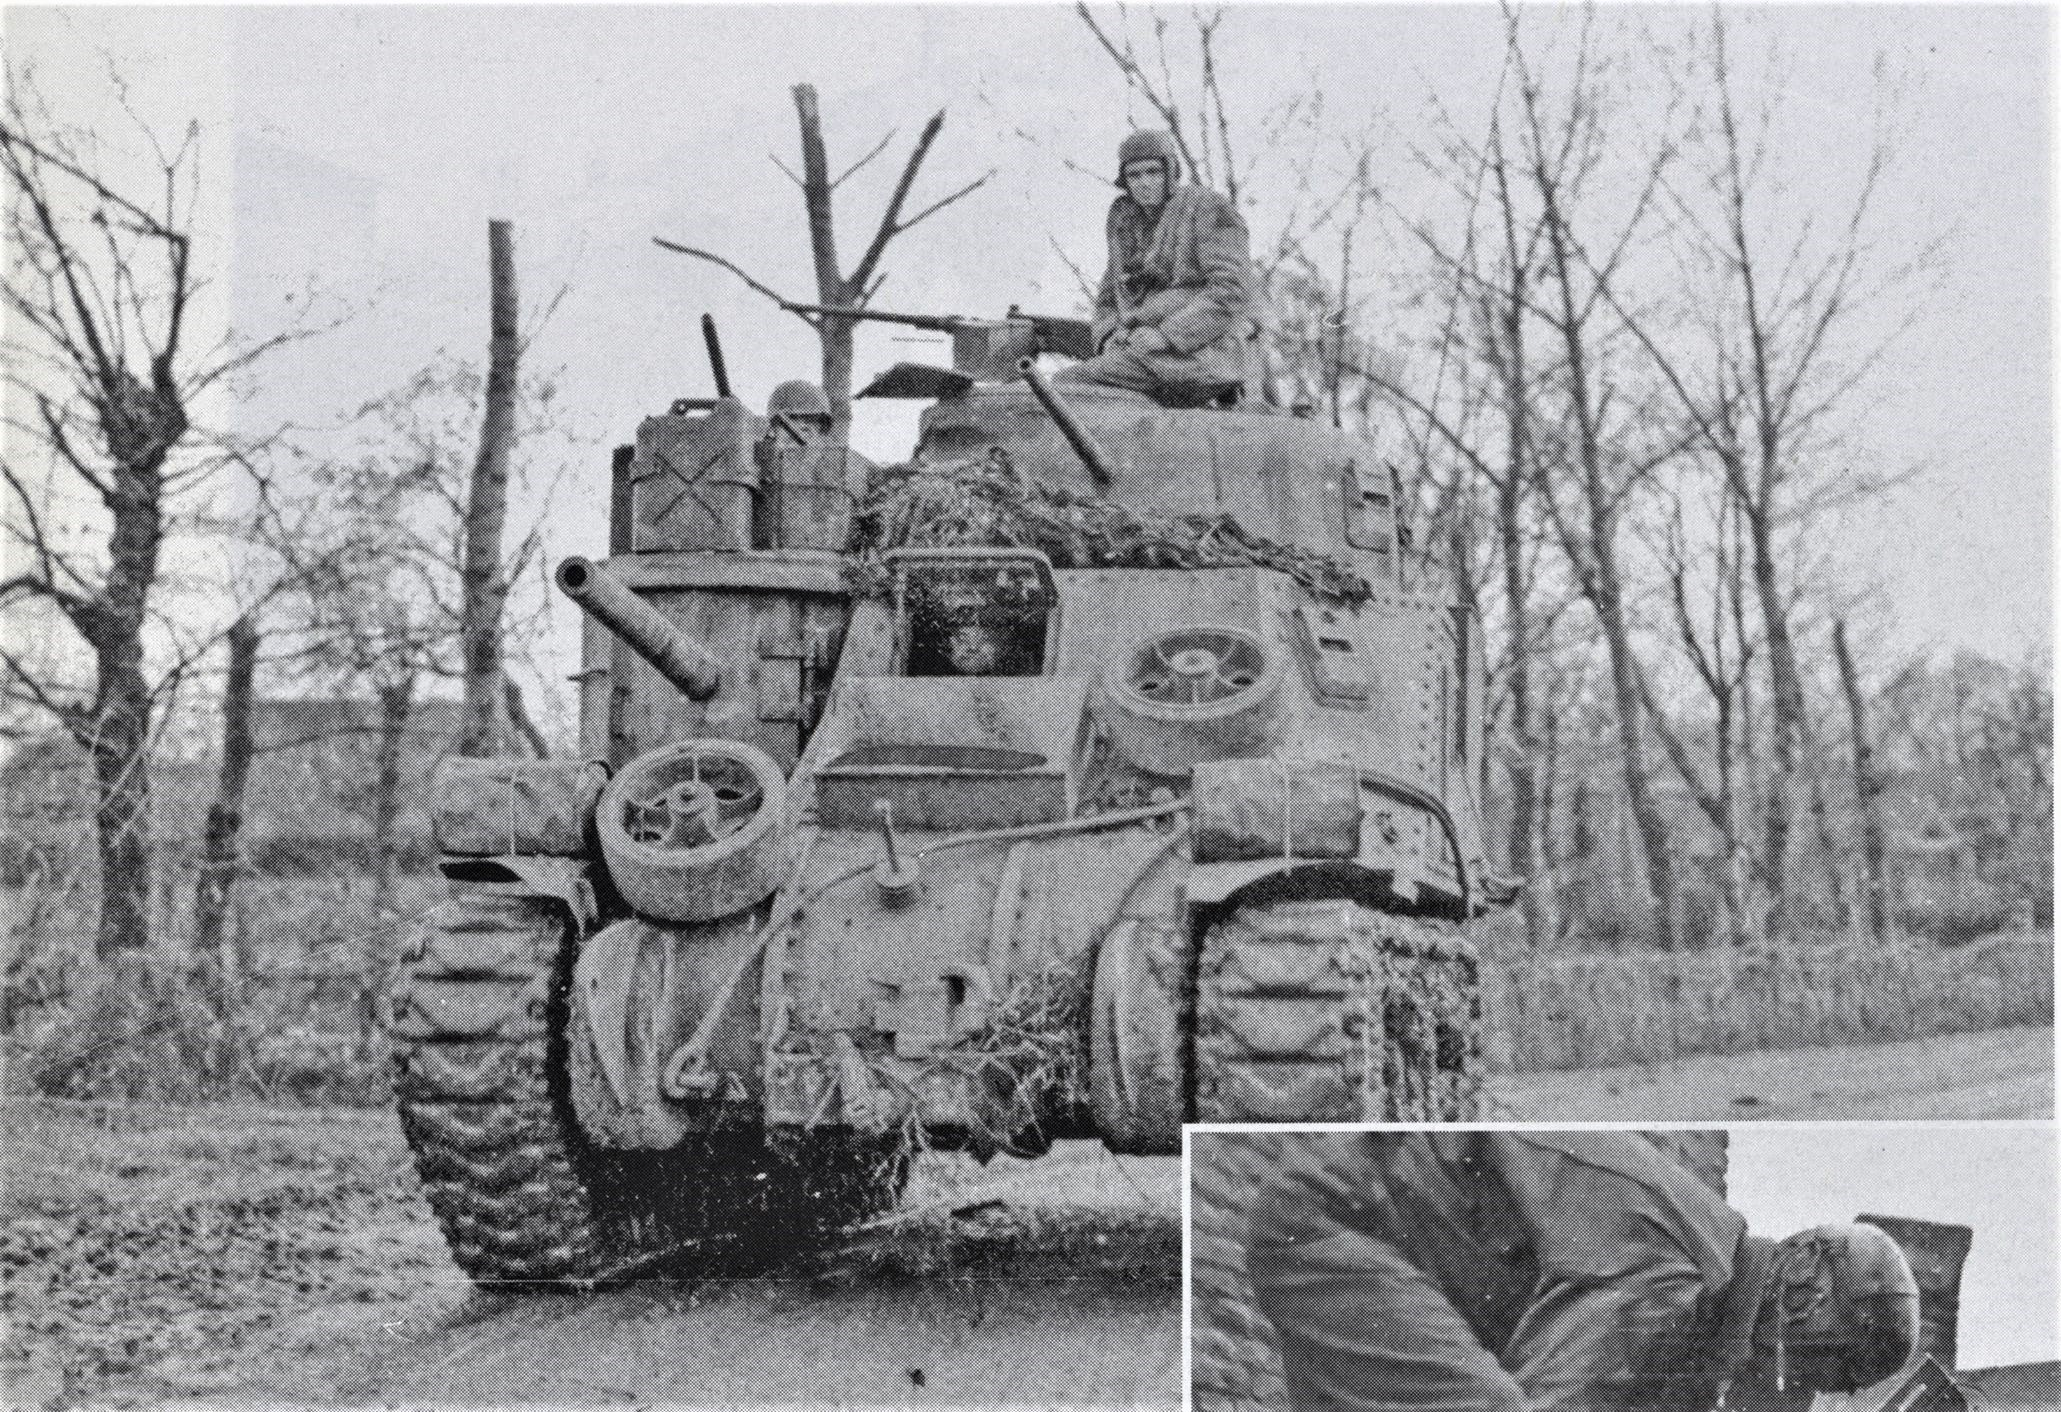 An M31 tank-recovery vehicle of the 2nd Armored Division near Loverich, Germany, on 18 November. Two large attachements haven been welded to the final drive housings for use as an improvised treadway bridge layer. (Source Real War Photos)